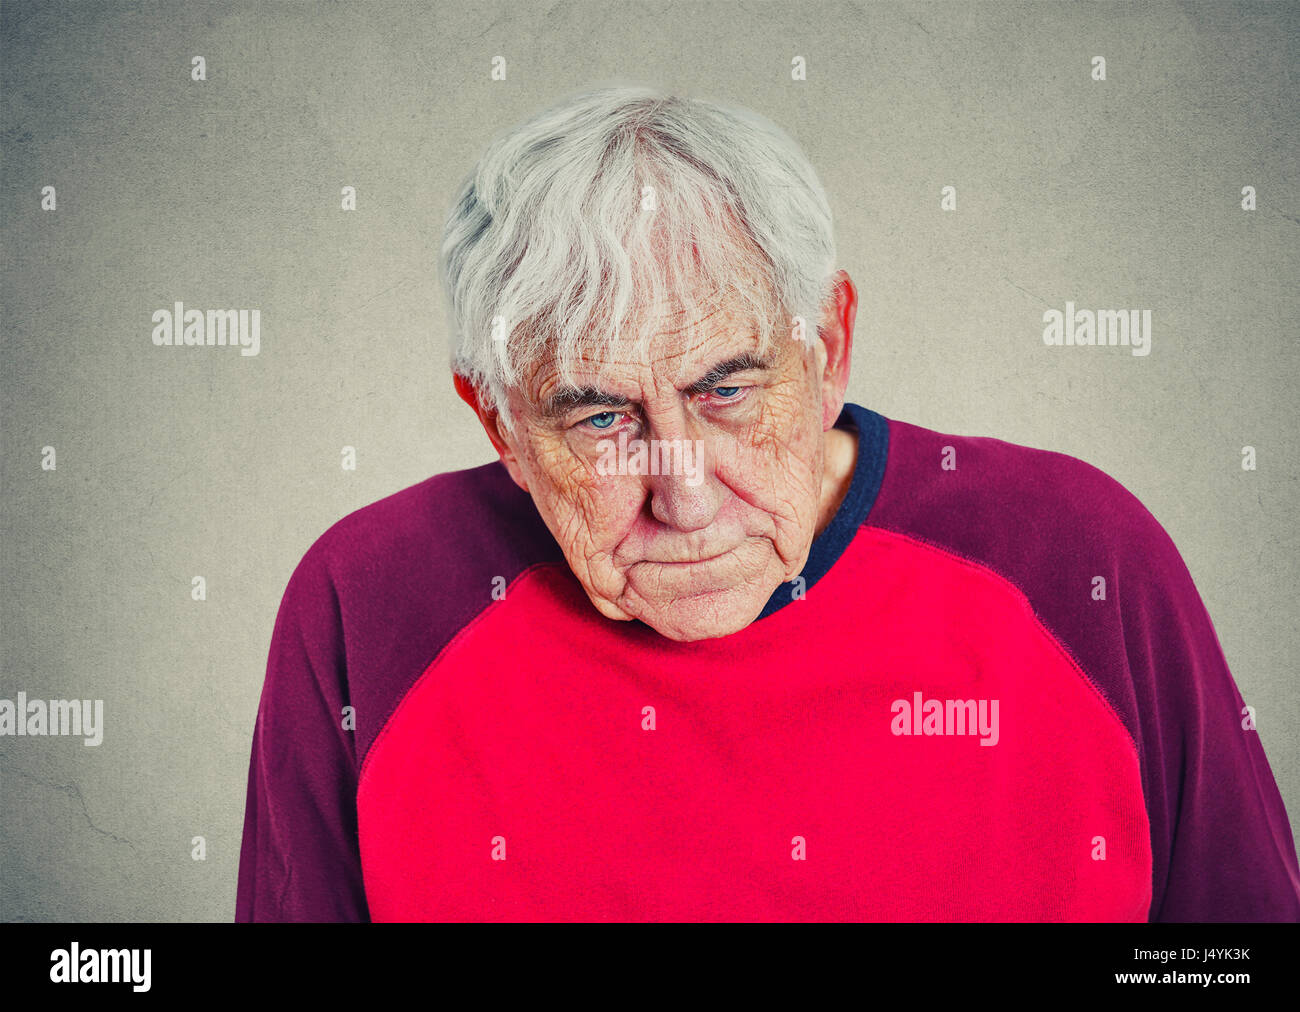 Portrait of an elderly depressed man - Stock Image